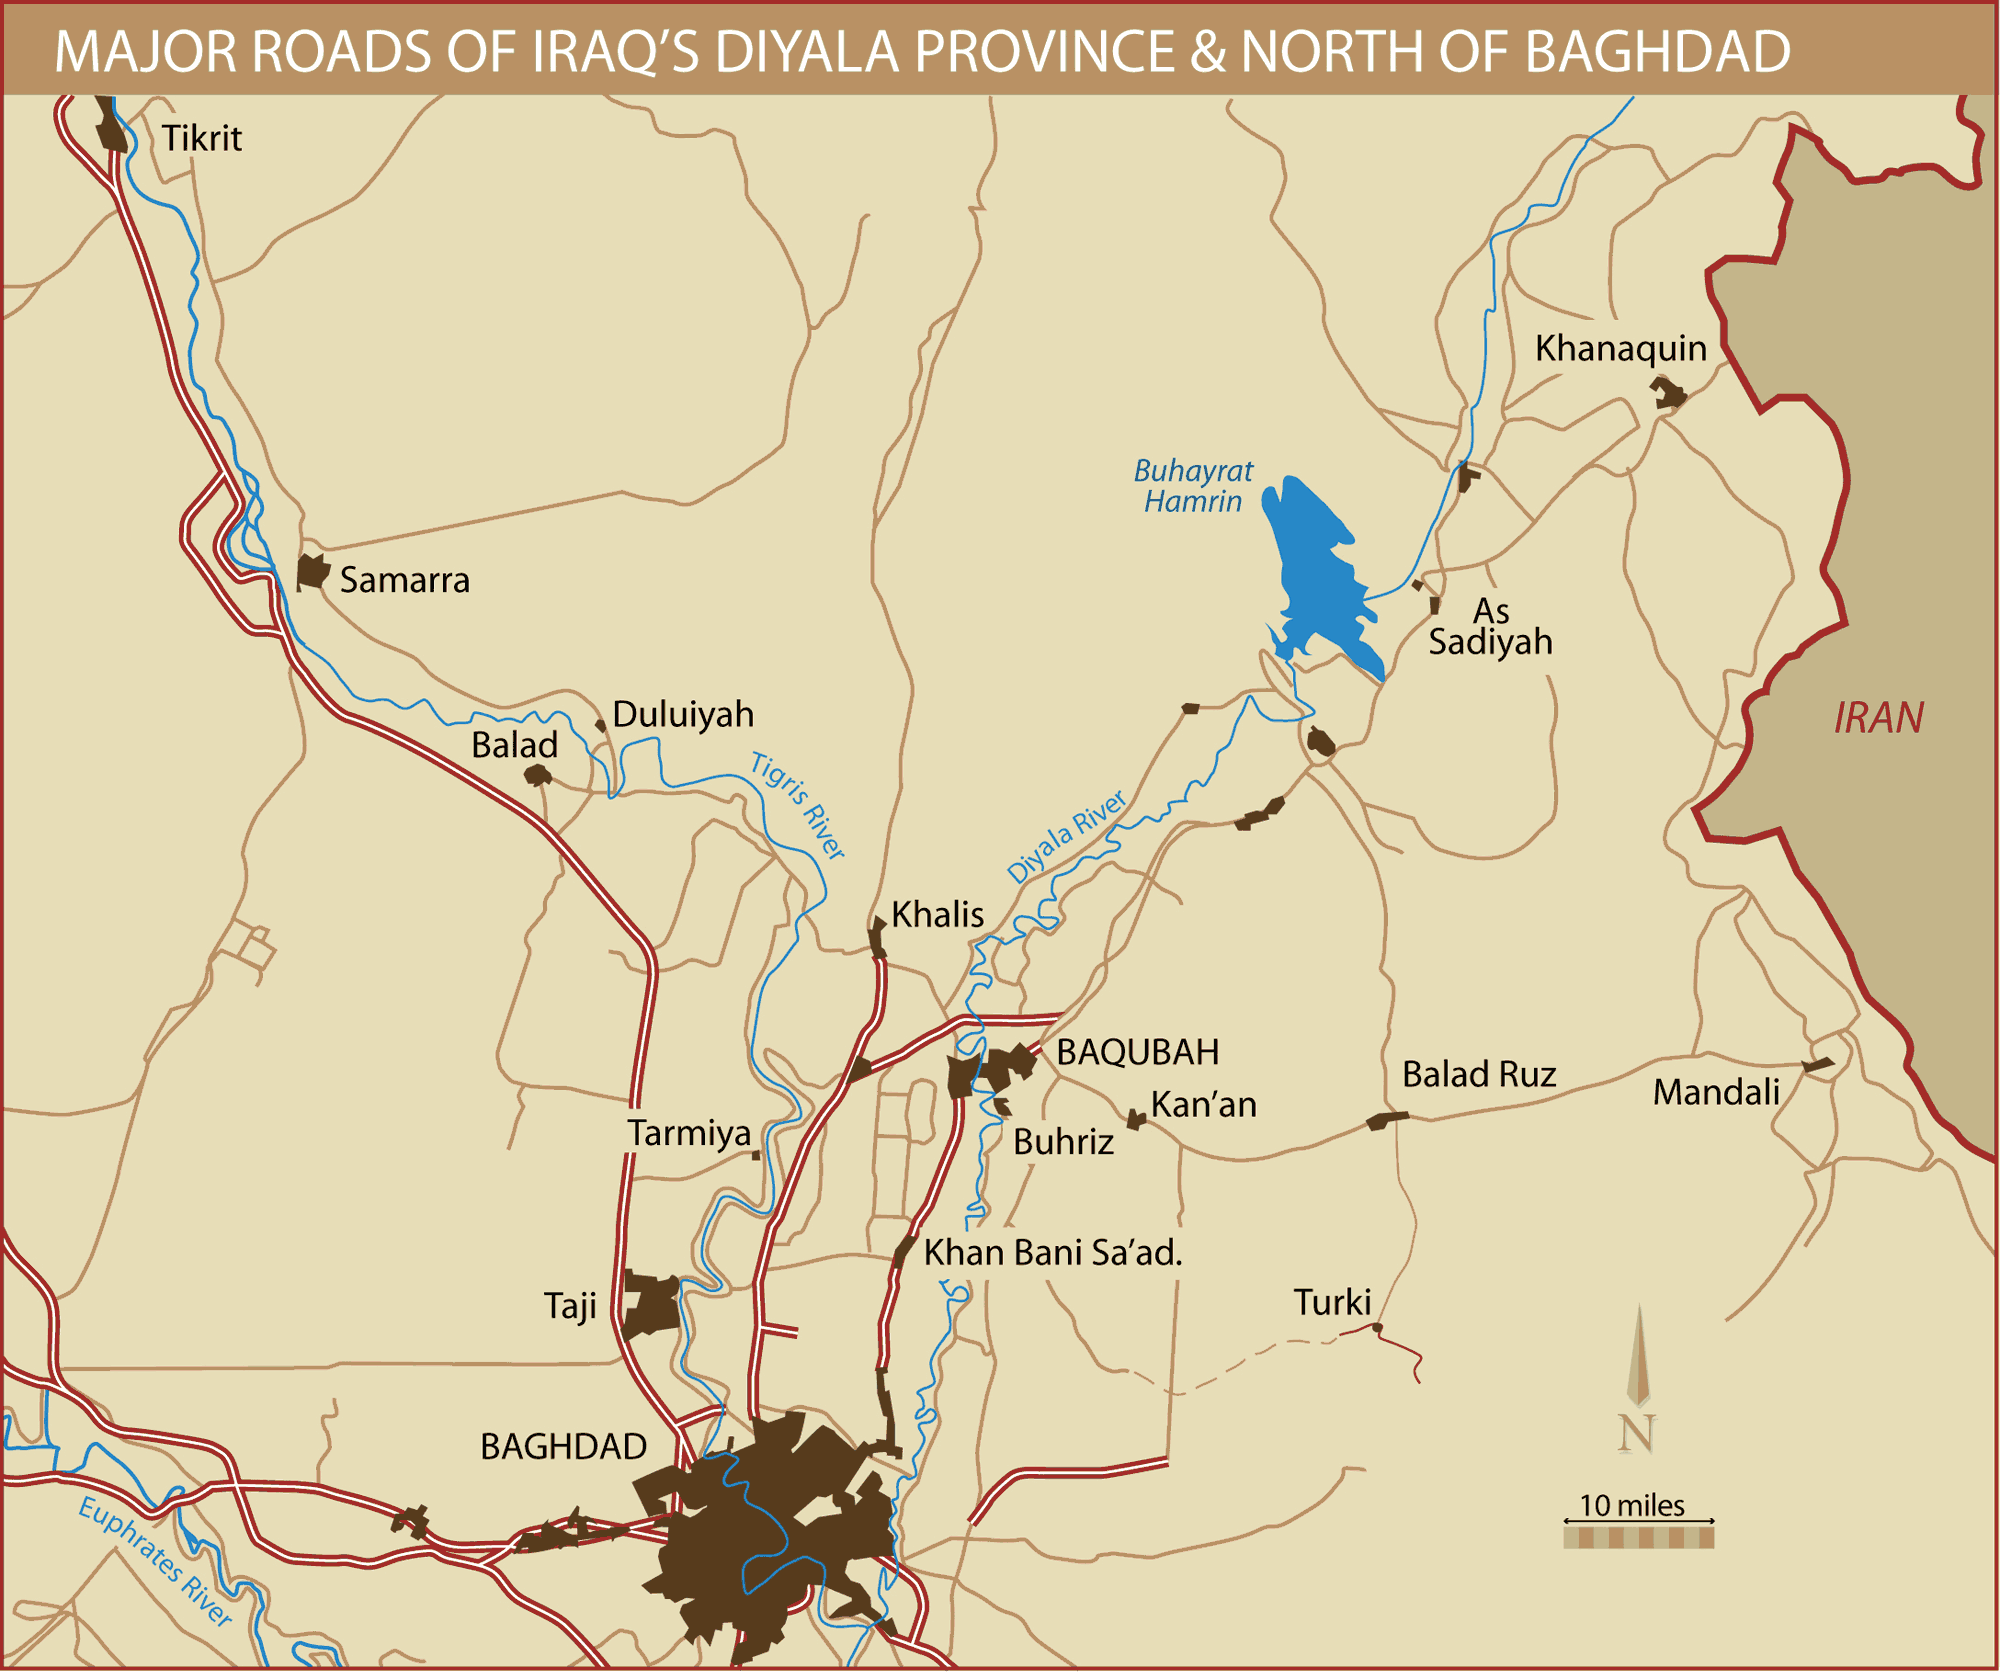 Northern Baghdad And Diyala Province Roads large map